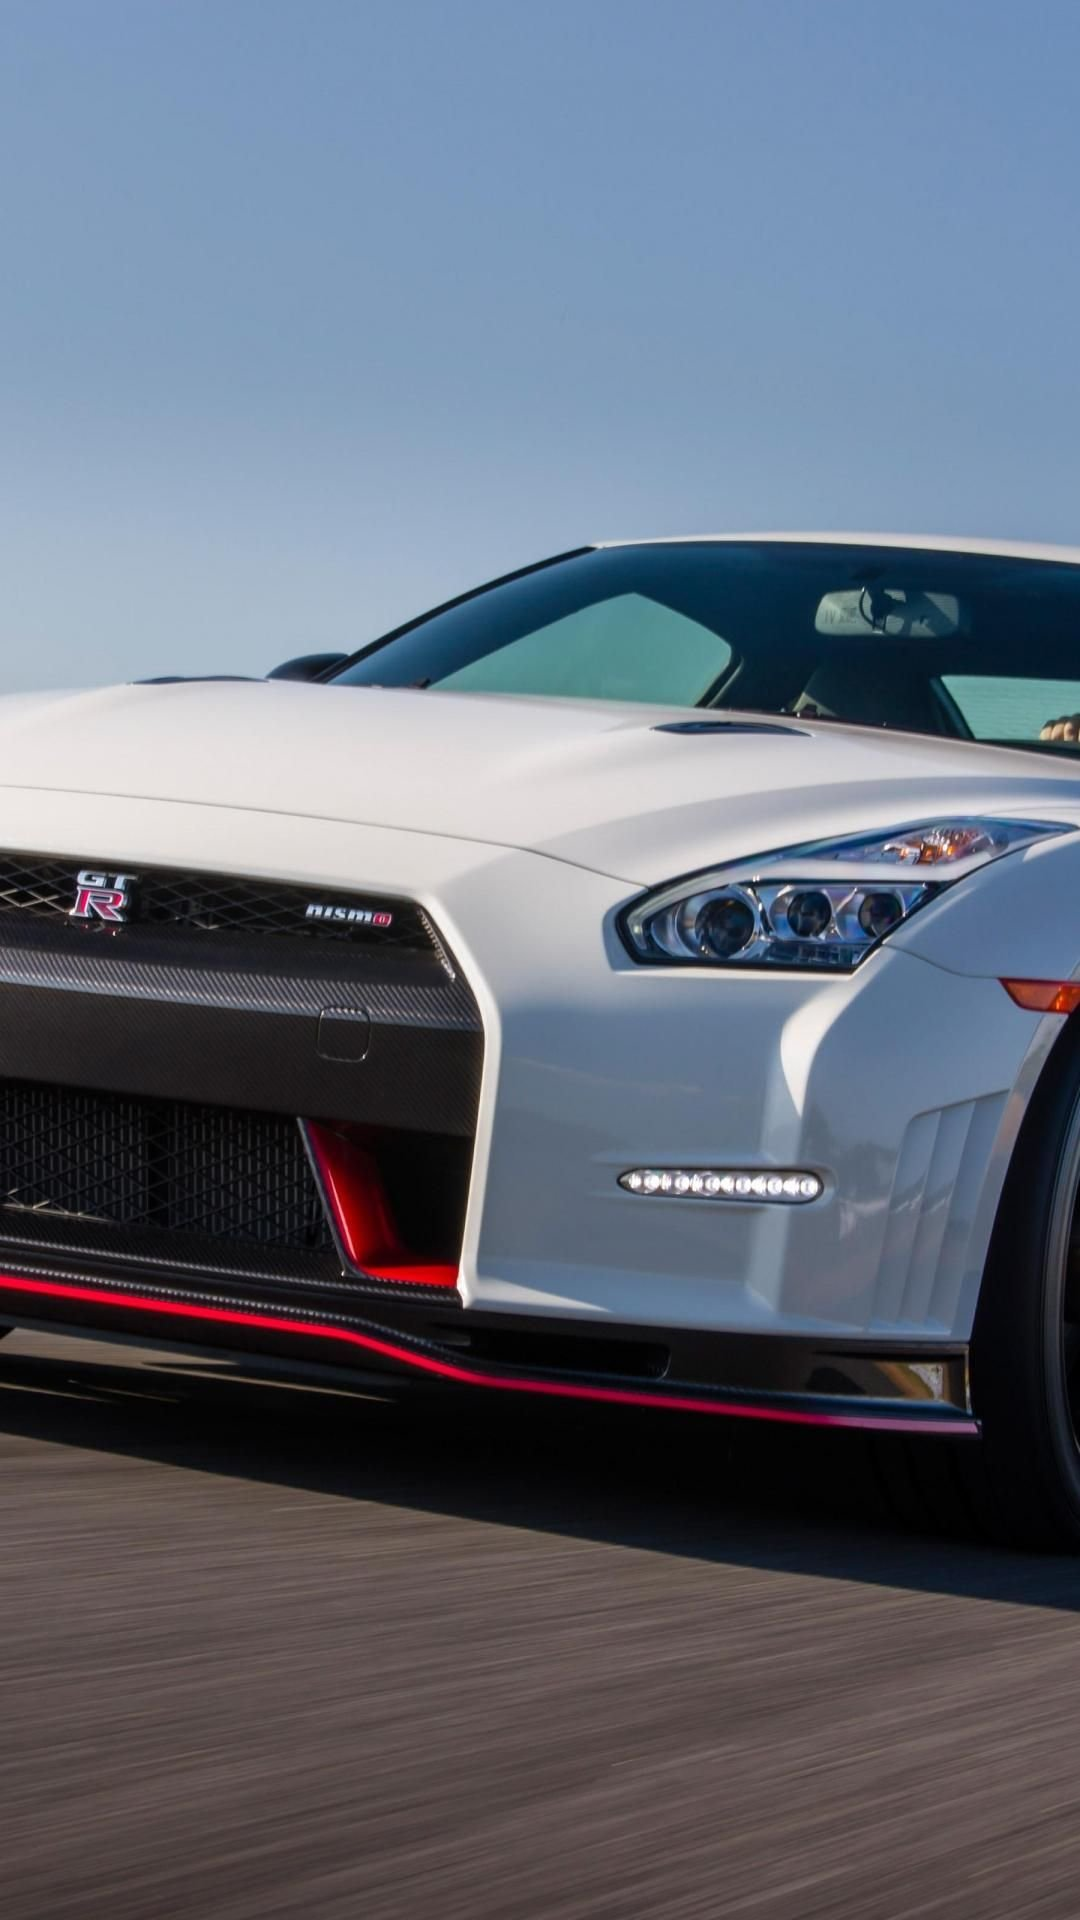 New Nissan Gtr Nismo Wallpaper For Iphone 6 Plus On This Month